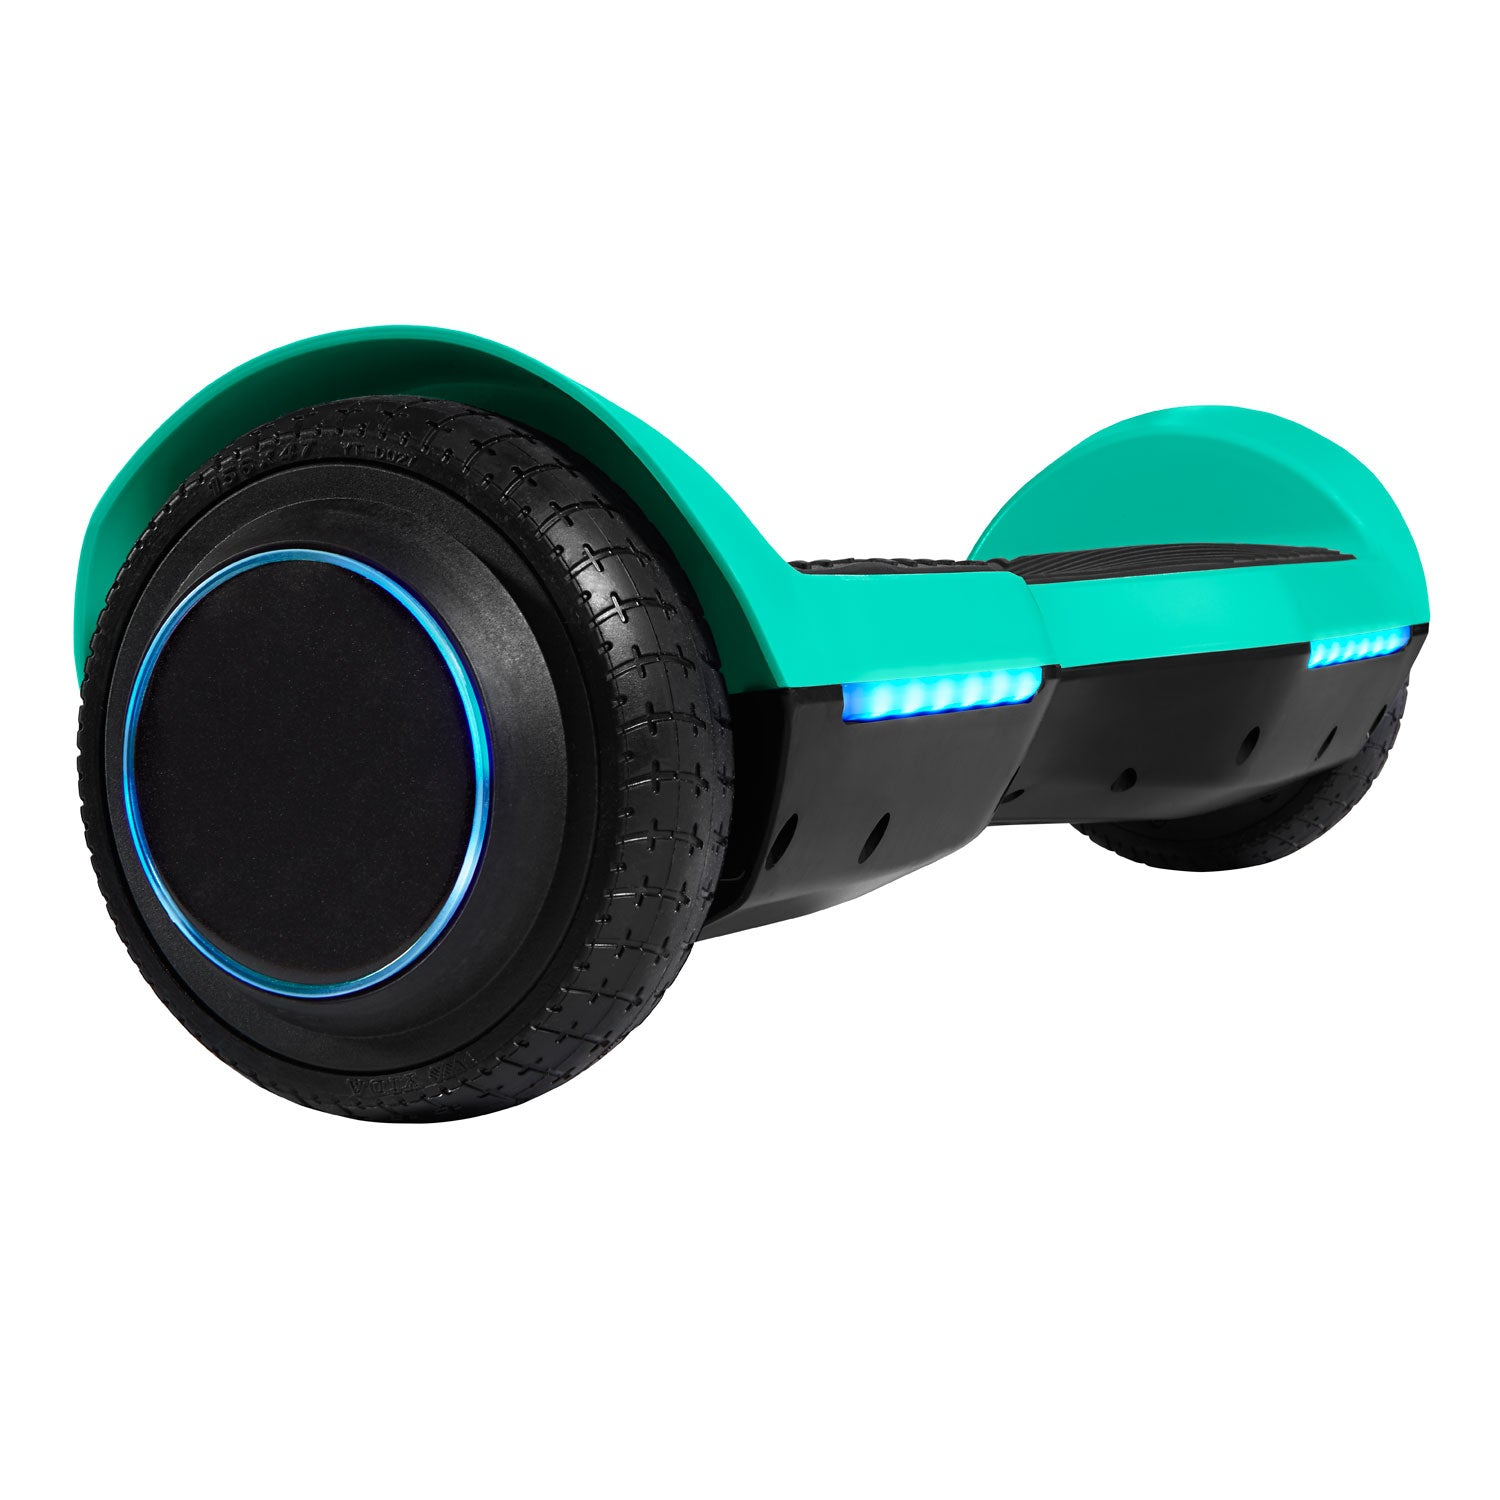 aqua Main image srx bluetooth hoverboard